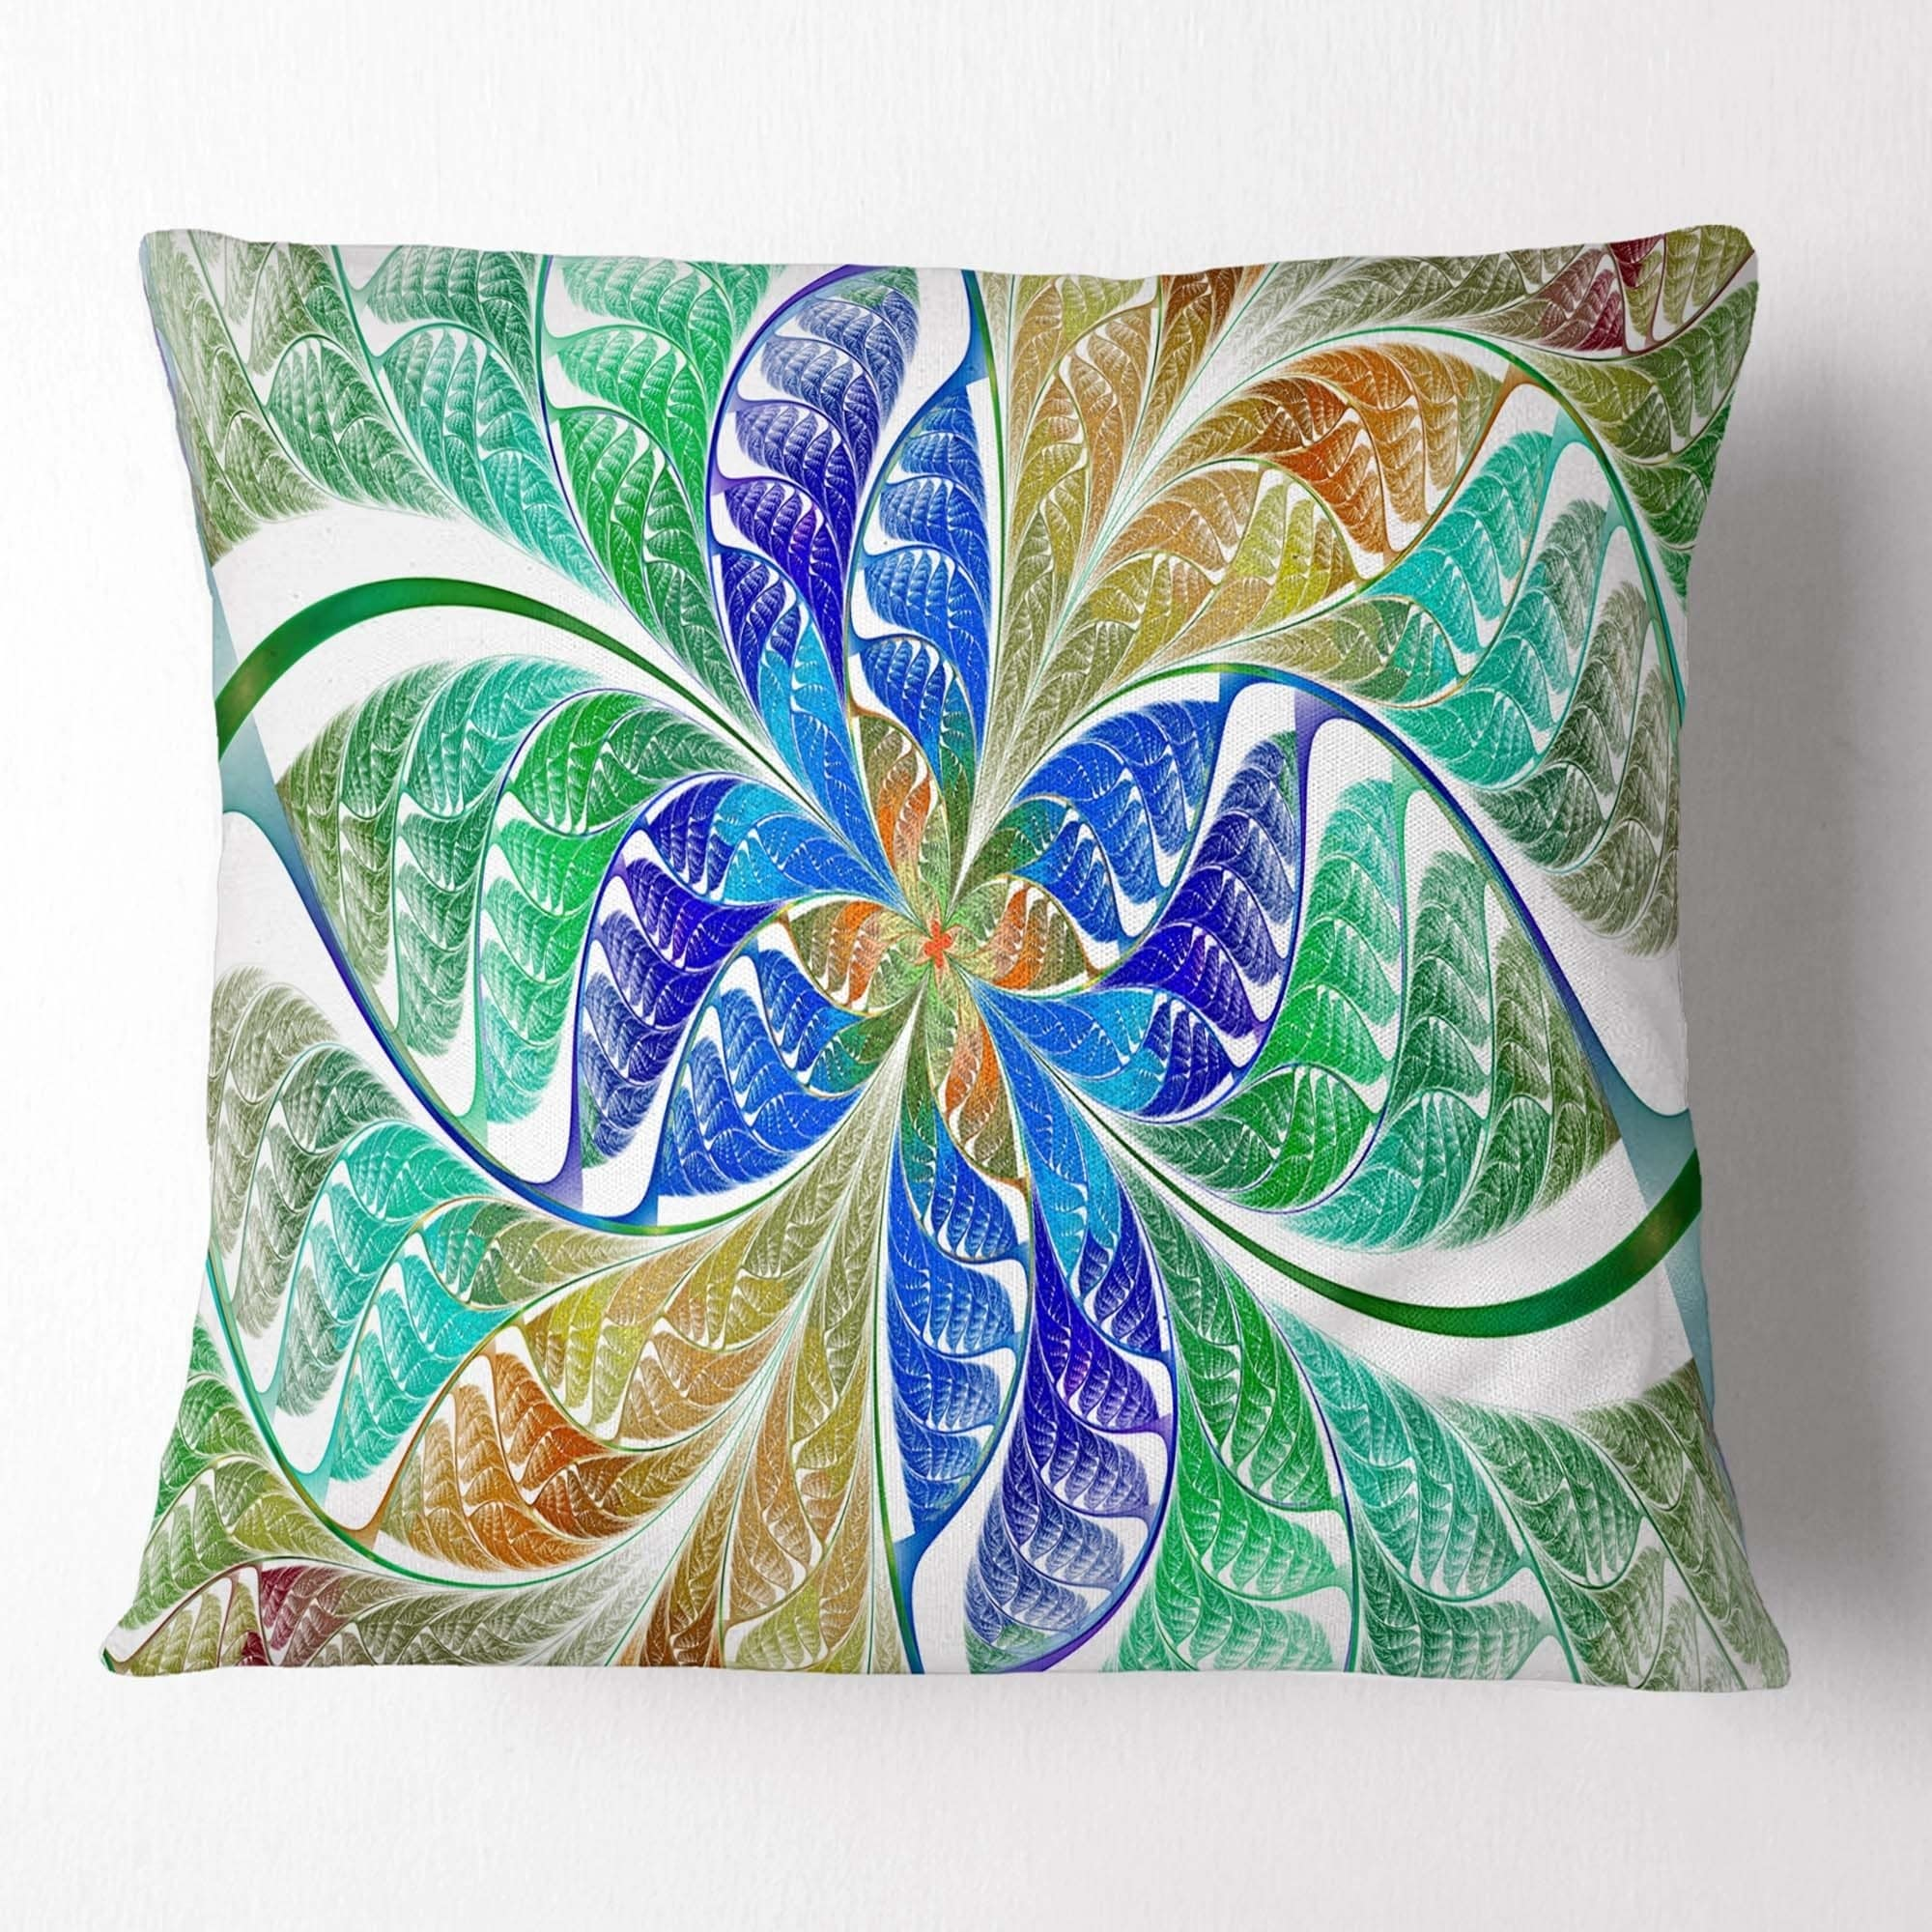 Design Art Designart Light Blue Fractal Stained Glass Abstract Throw Pillow Walmart Com Walmart Com